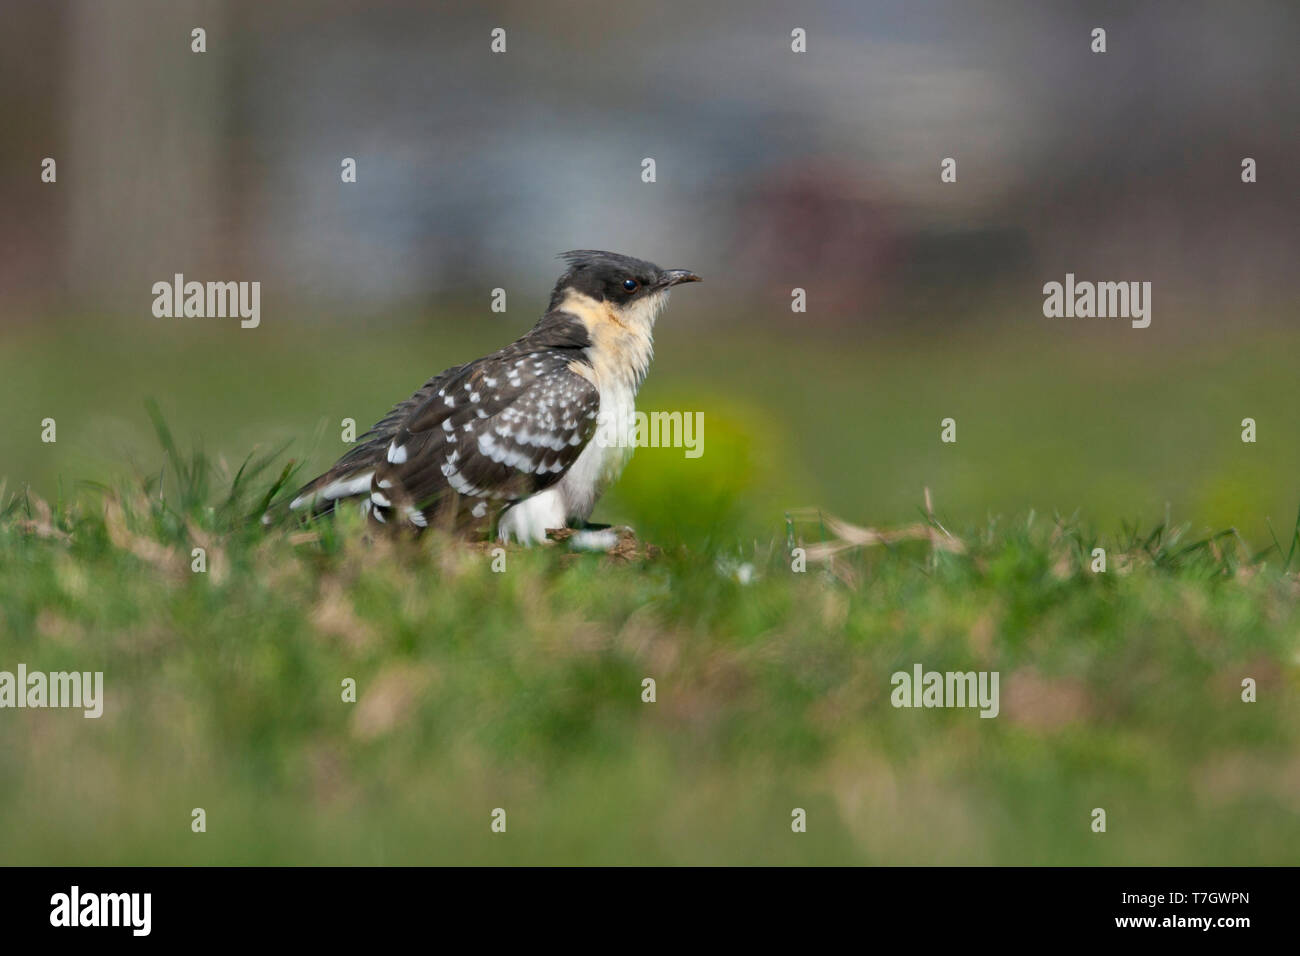 Great Spotted Cuckoo (Clamator glandarius), side view of a first summer individual standing on the ground - Stock Image